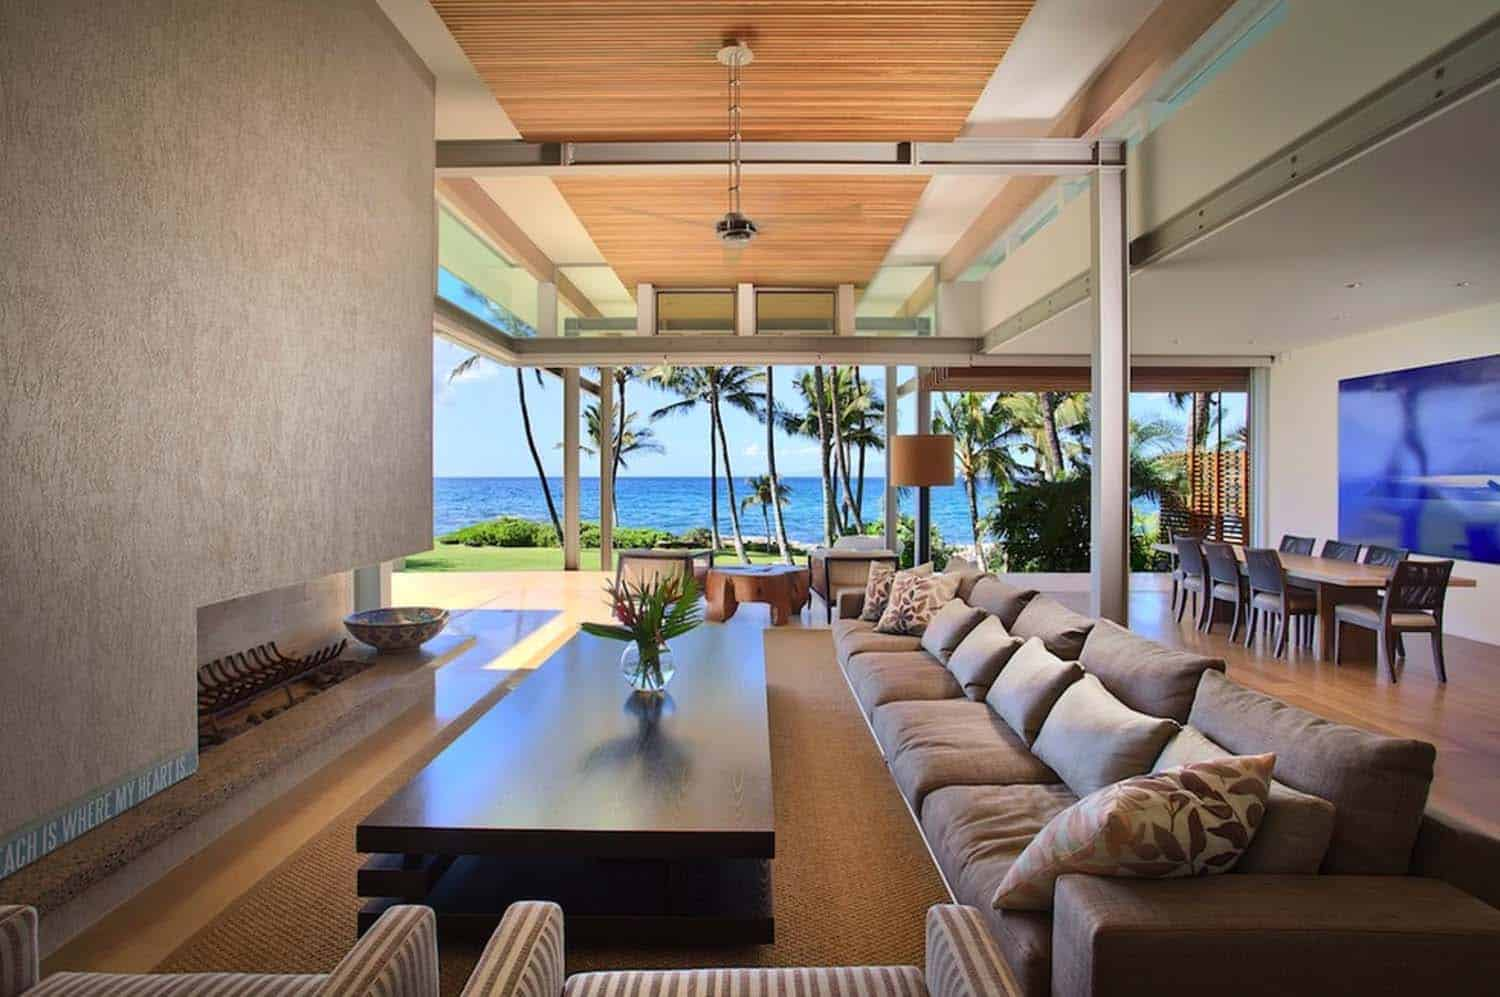 Tropical Maui Residence-Bossley Architects-08-1 Kindesign